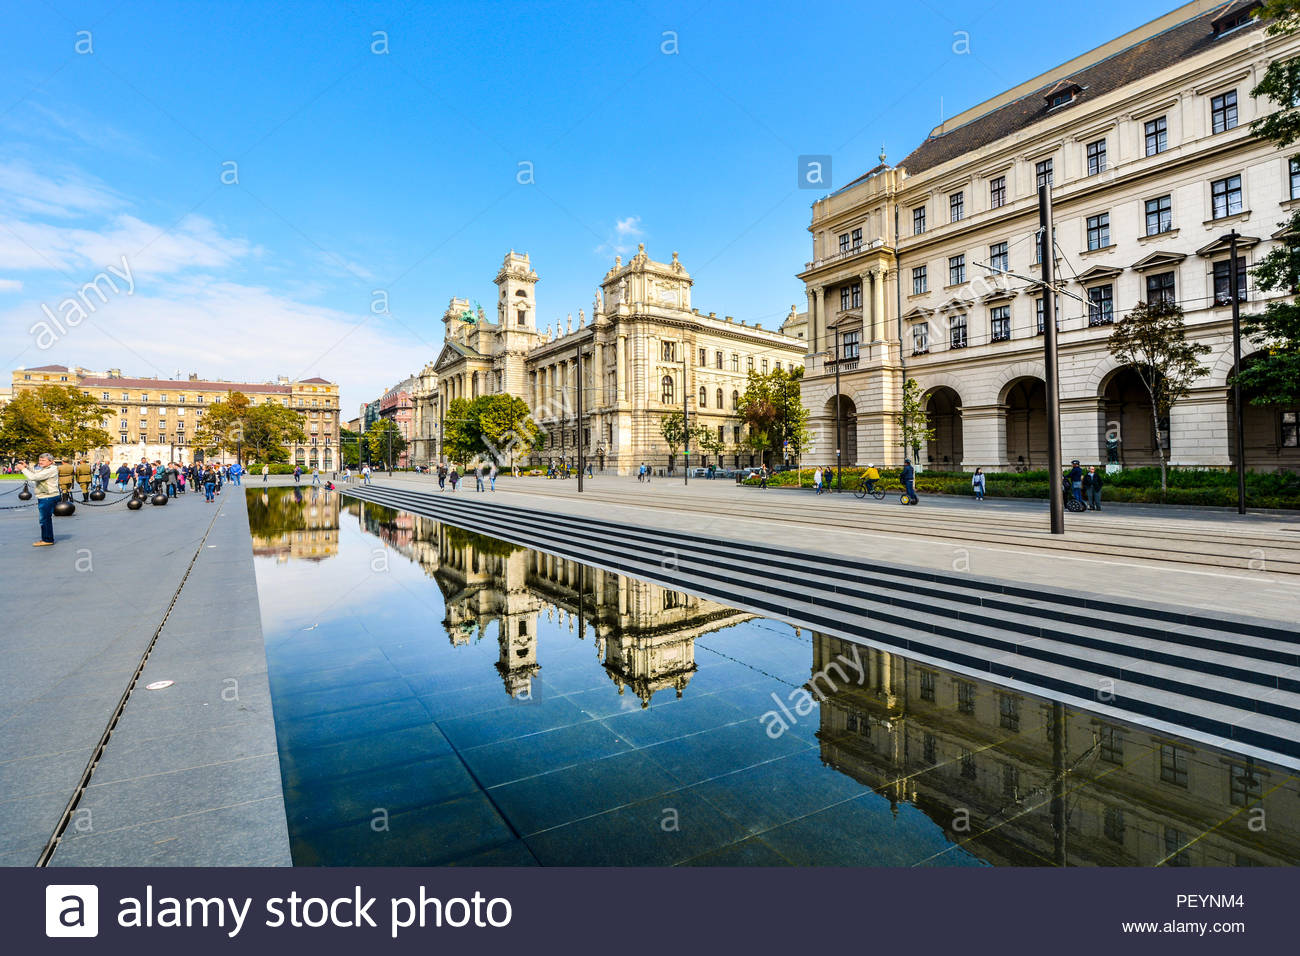 Tourists watch Hungarian guards in Parliament Square as Hungarian government buildings reflect in the large reflecting pool in Budapest, Hungary - Stock Image